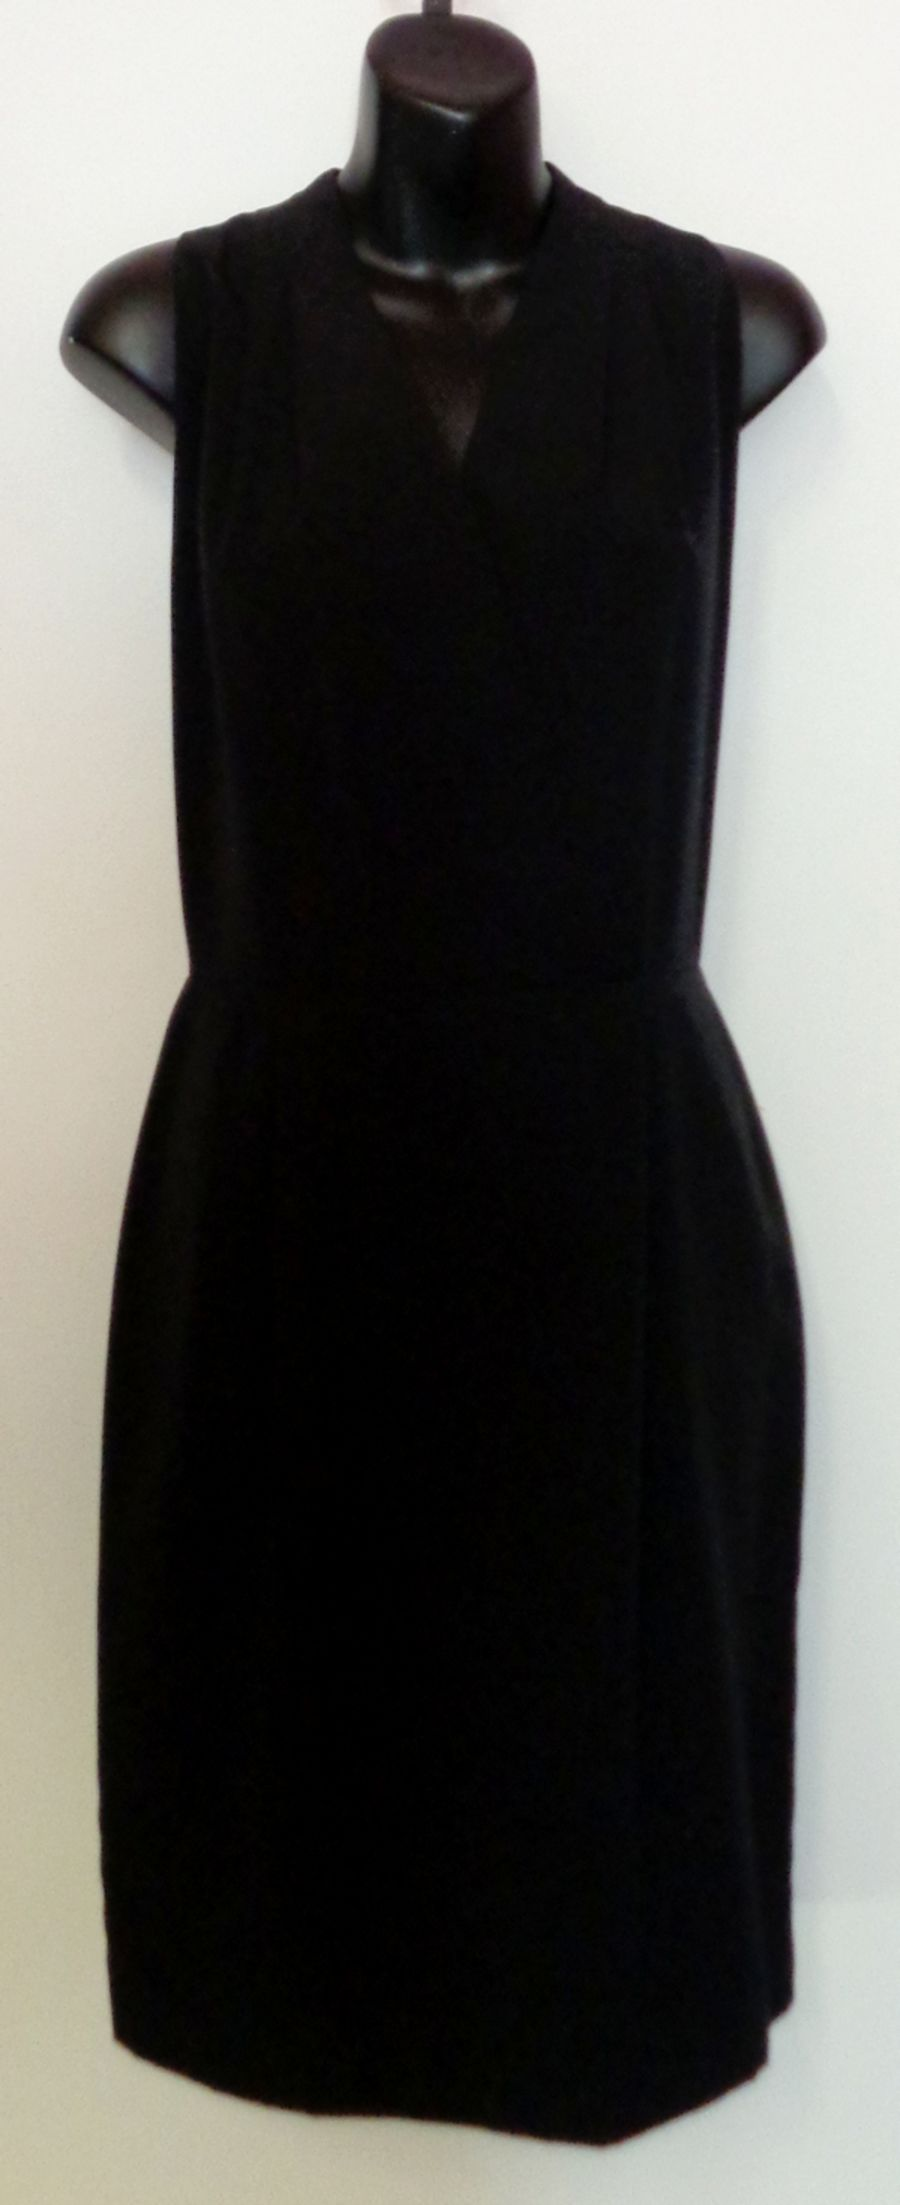 Vintage Women's Black 1980's Black Wrap Shift Dress